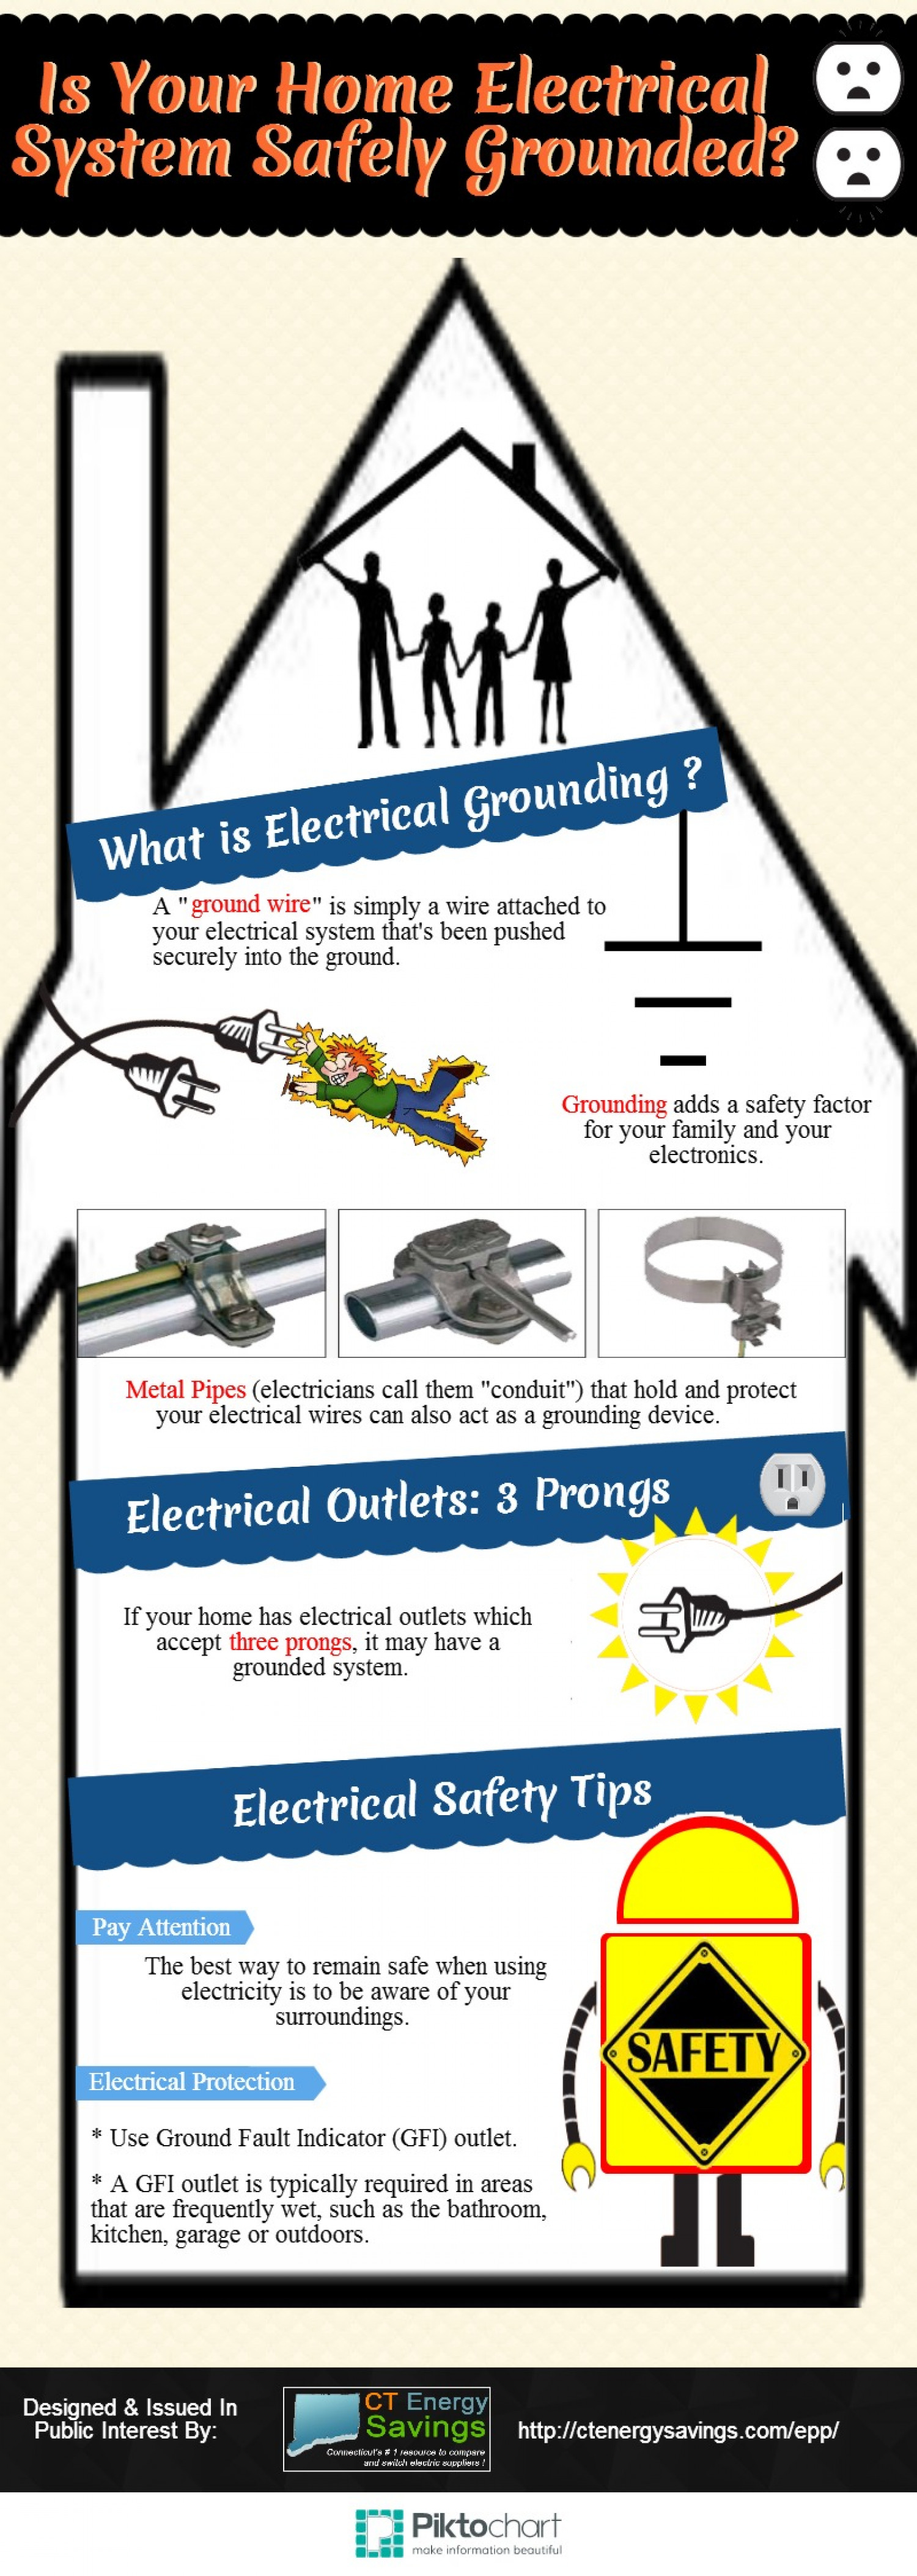 Is Your Home Electrical System Safely Grounded? | Visual.ly